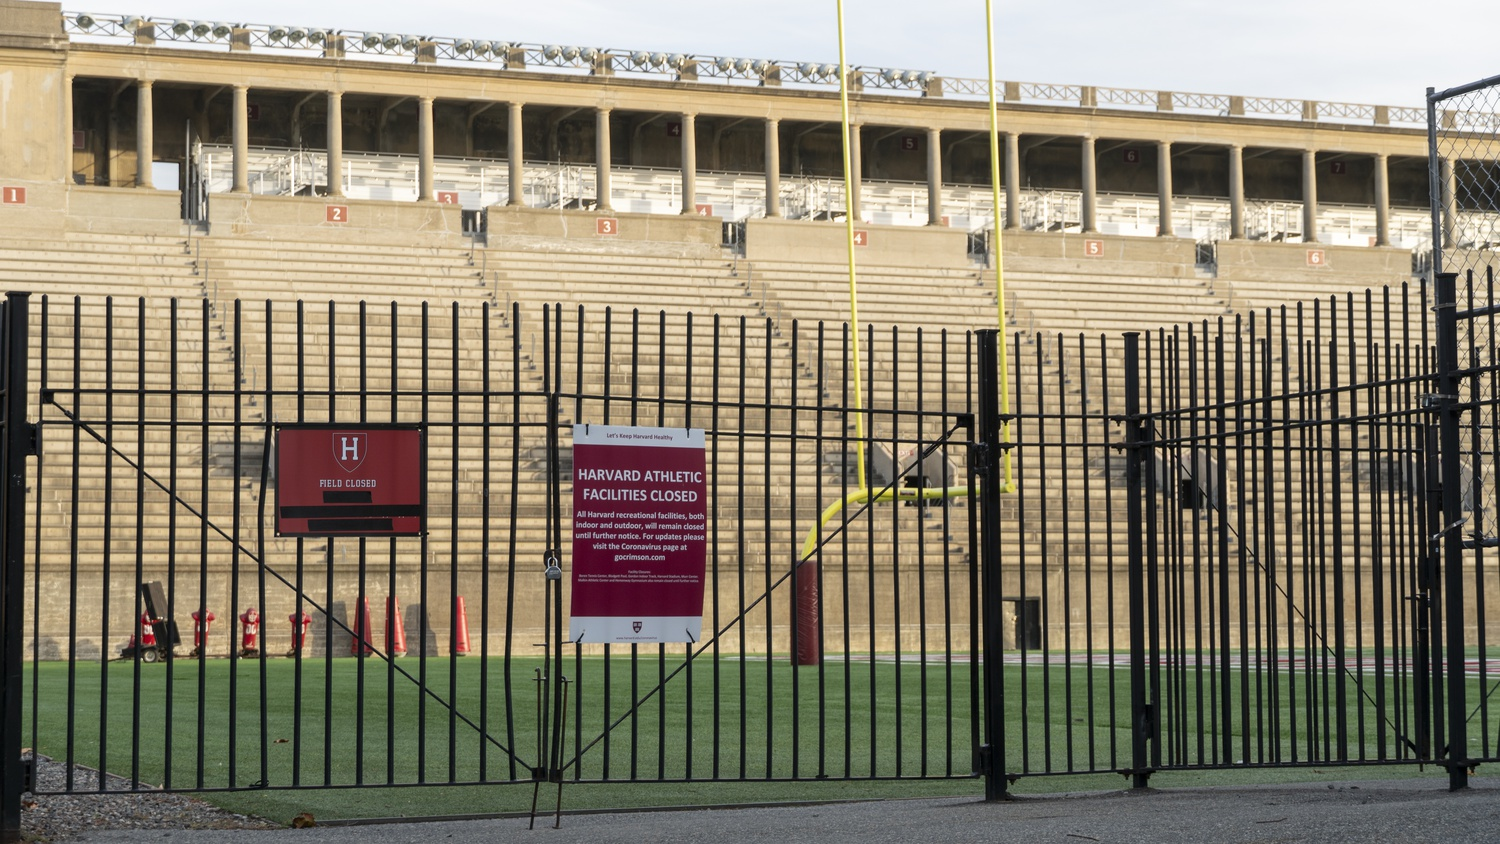 Signs posted outside Harvard Stadium announce that all recreational facilities are closed due to the COVID-19 pandemic.